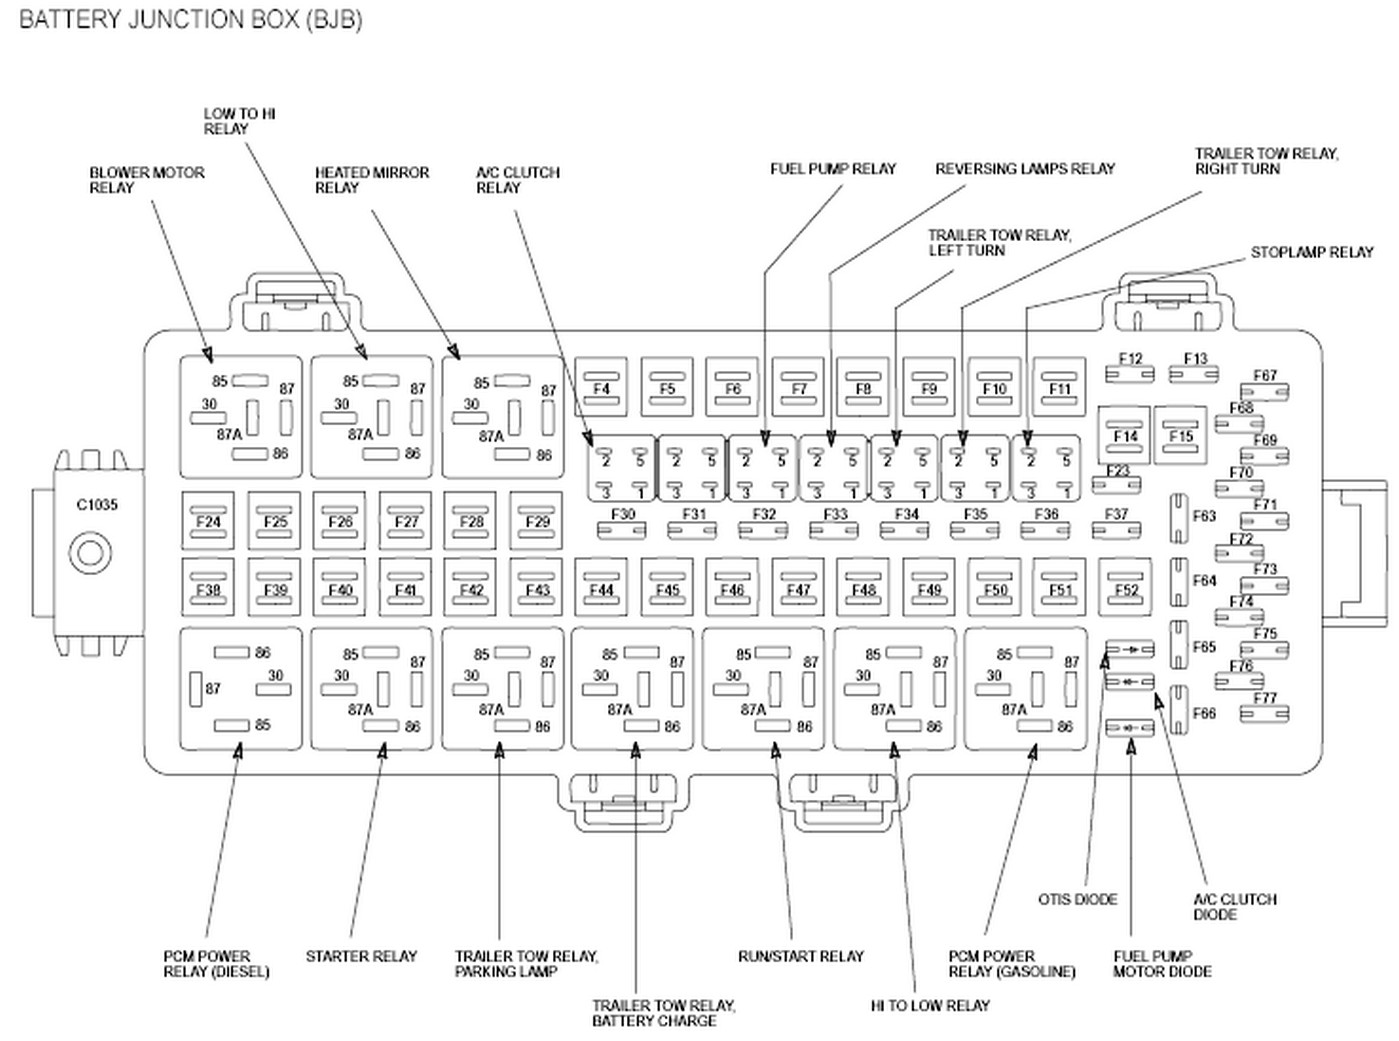 2011 ford f250 fuse box diagram Zoinyhu 2012 f250 fuse box location 2009 ford fusion fuse box diagram radio fuse in fuse box at readyjetset.co